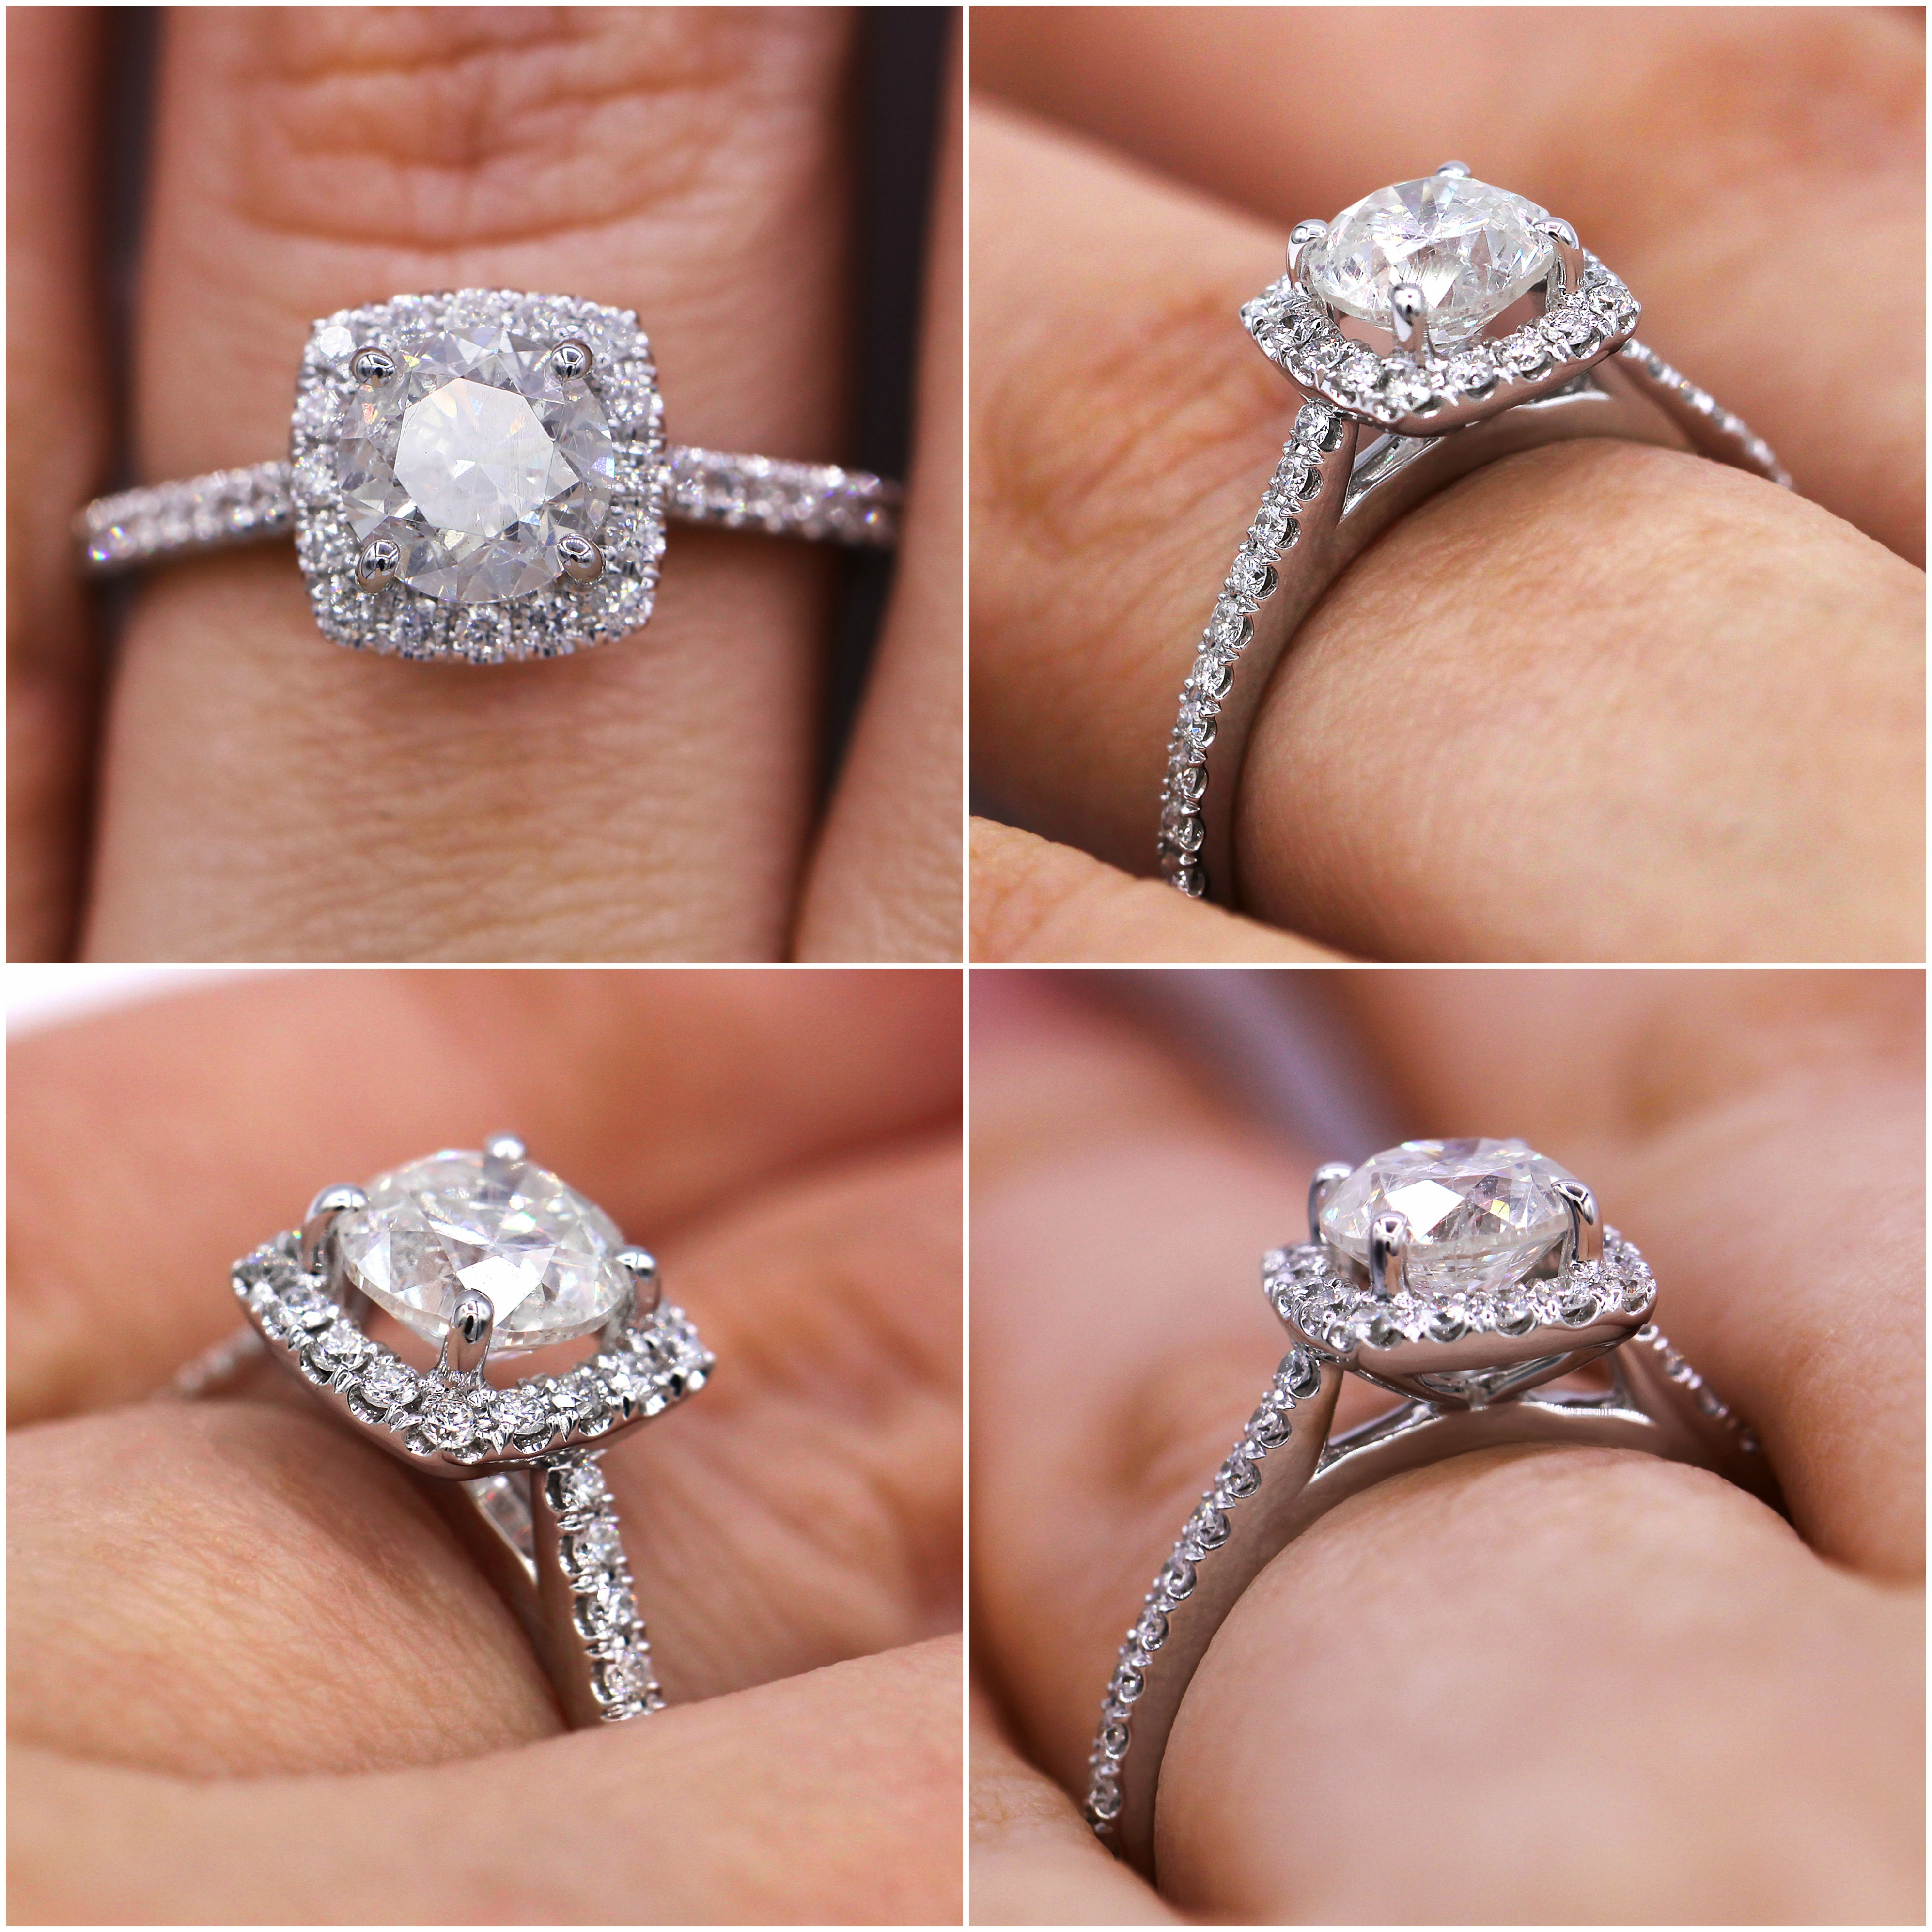 Delicate and beautiful 1.47cts halo diamond ring